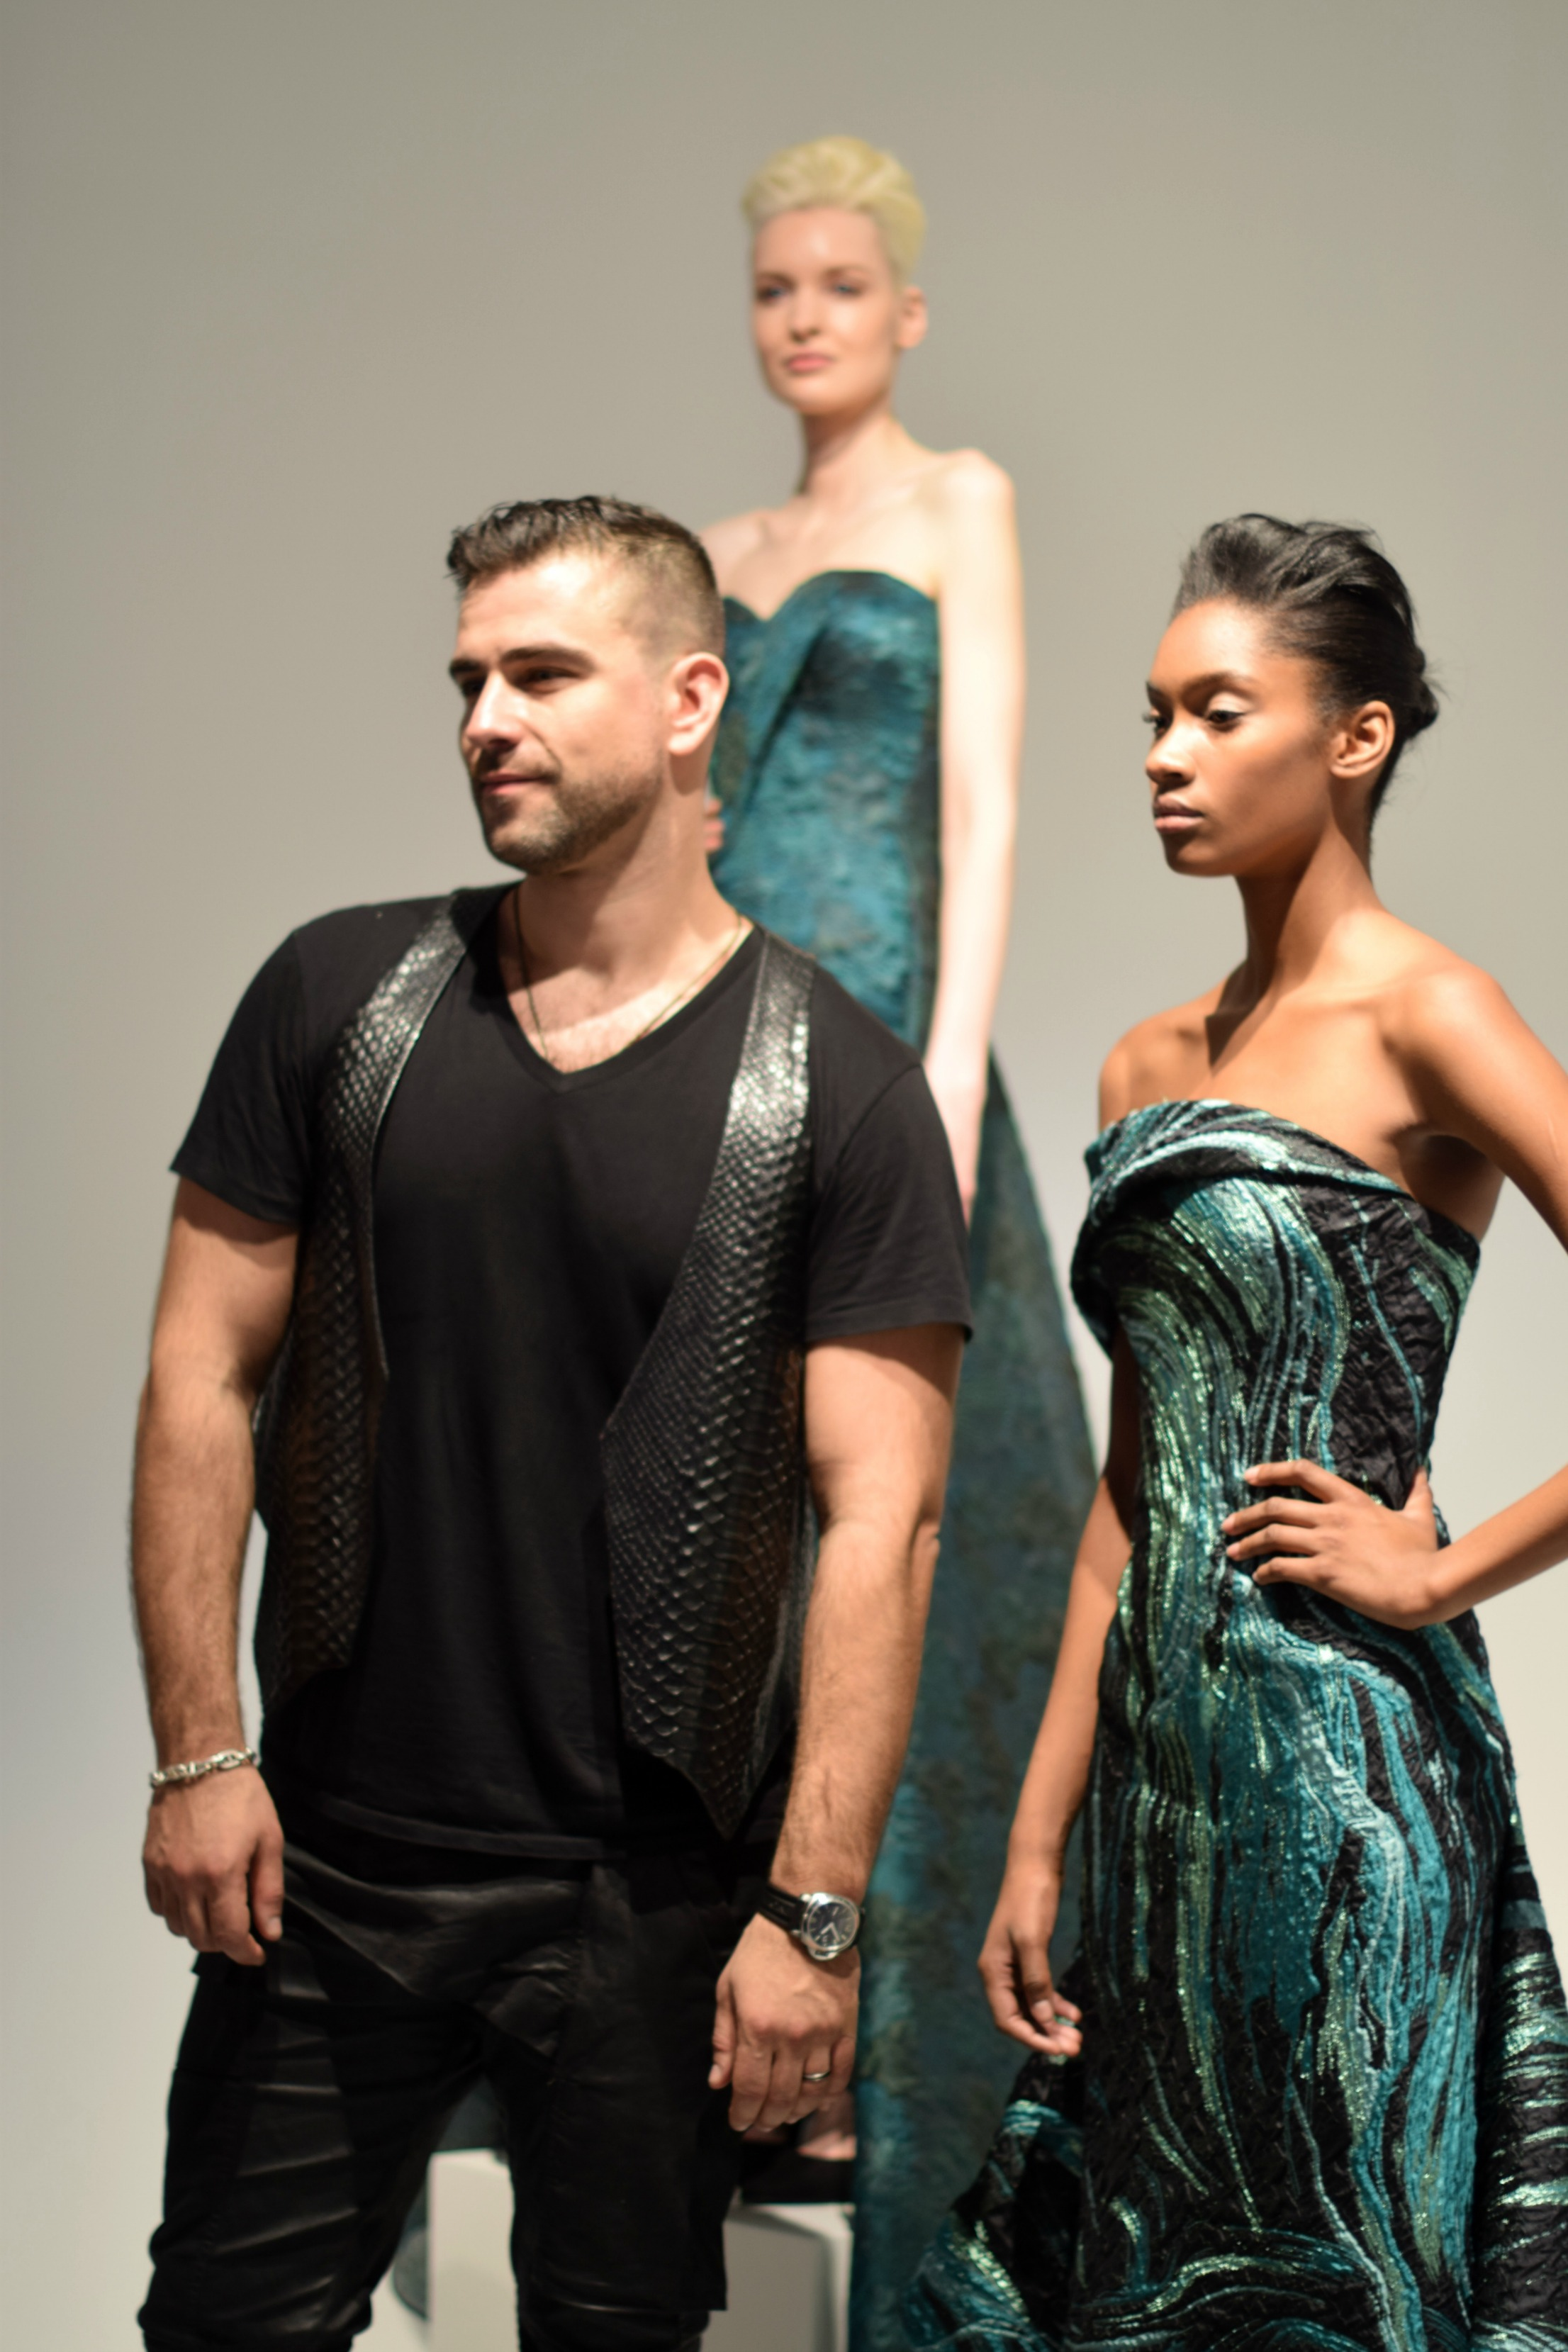 NYFW Rubin Singer Fashion Presentation Fall_Winter 2016 Louboutins _ Love Fashion Blog Esther Santer NYC Street Style Runway Models Collection Press Coverage Photos Details Dress Gown Beautiful Gorgeous Stunning Pretty Shop New York City Celebrities 4.jpg